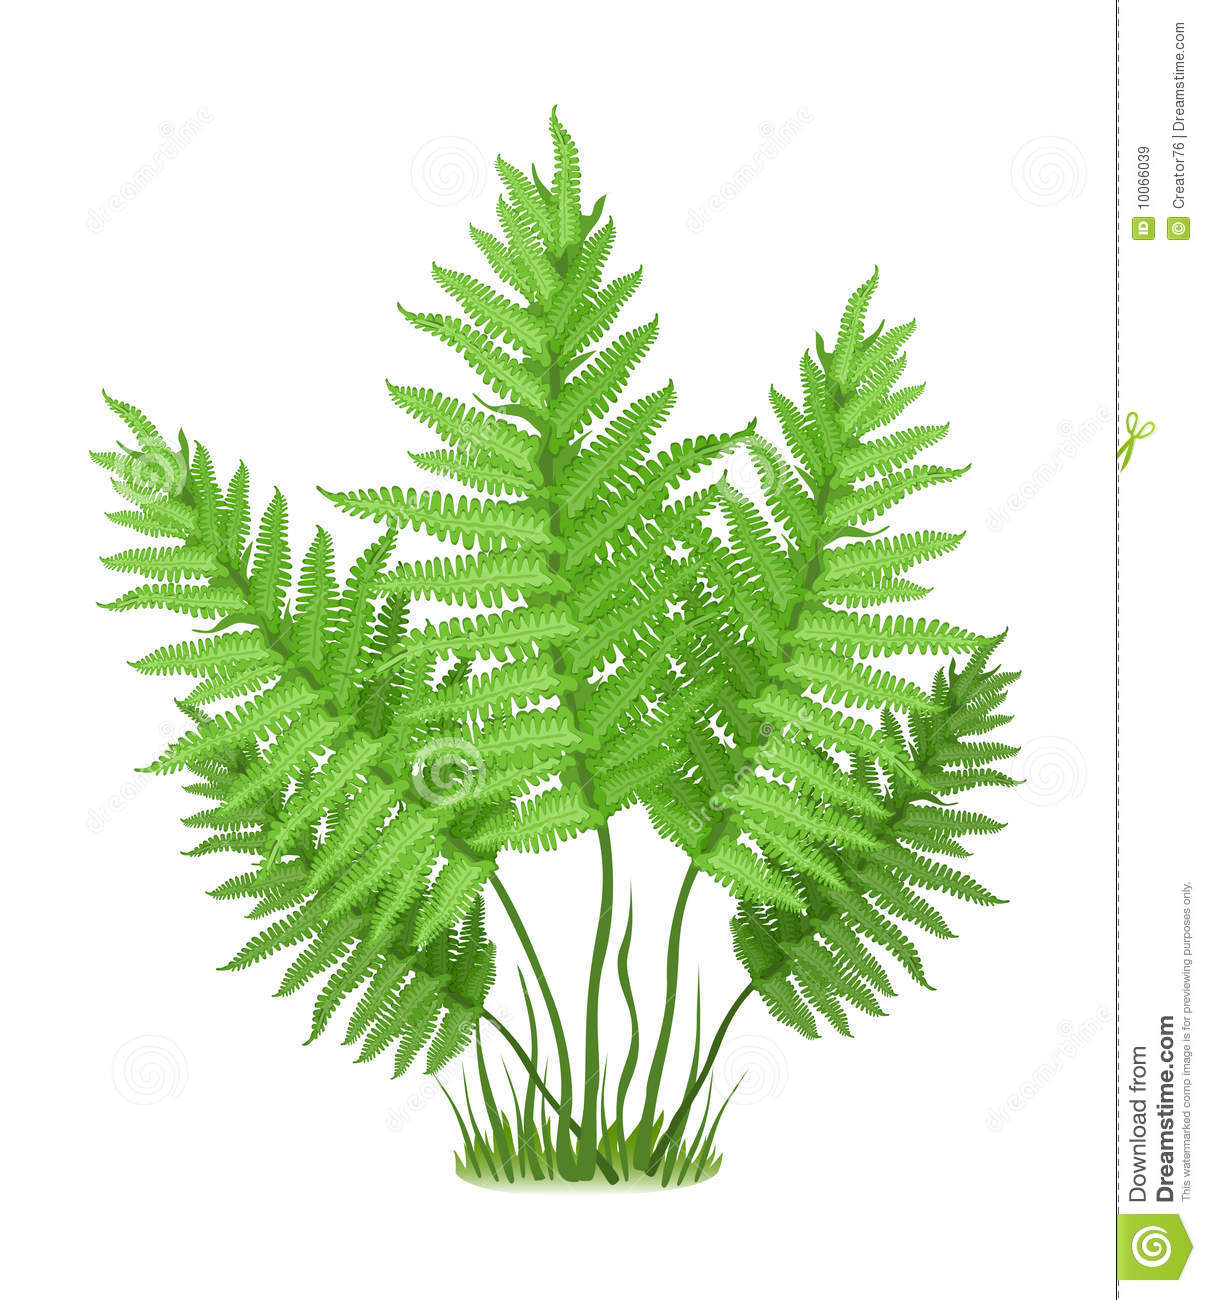 fern royalty free stock images image 10066039 tropical foliage clipart Picnic Clip Art